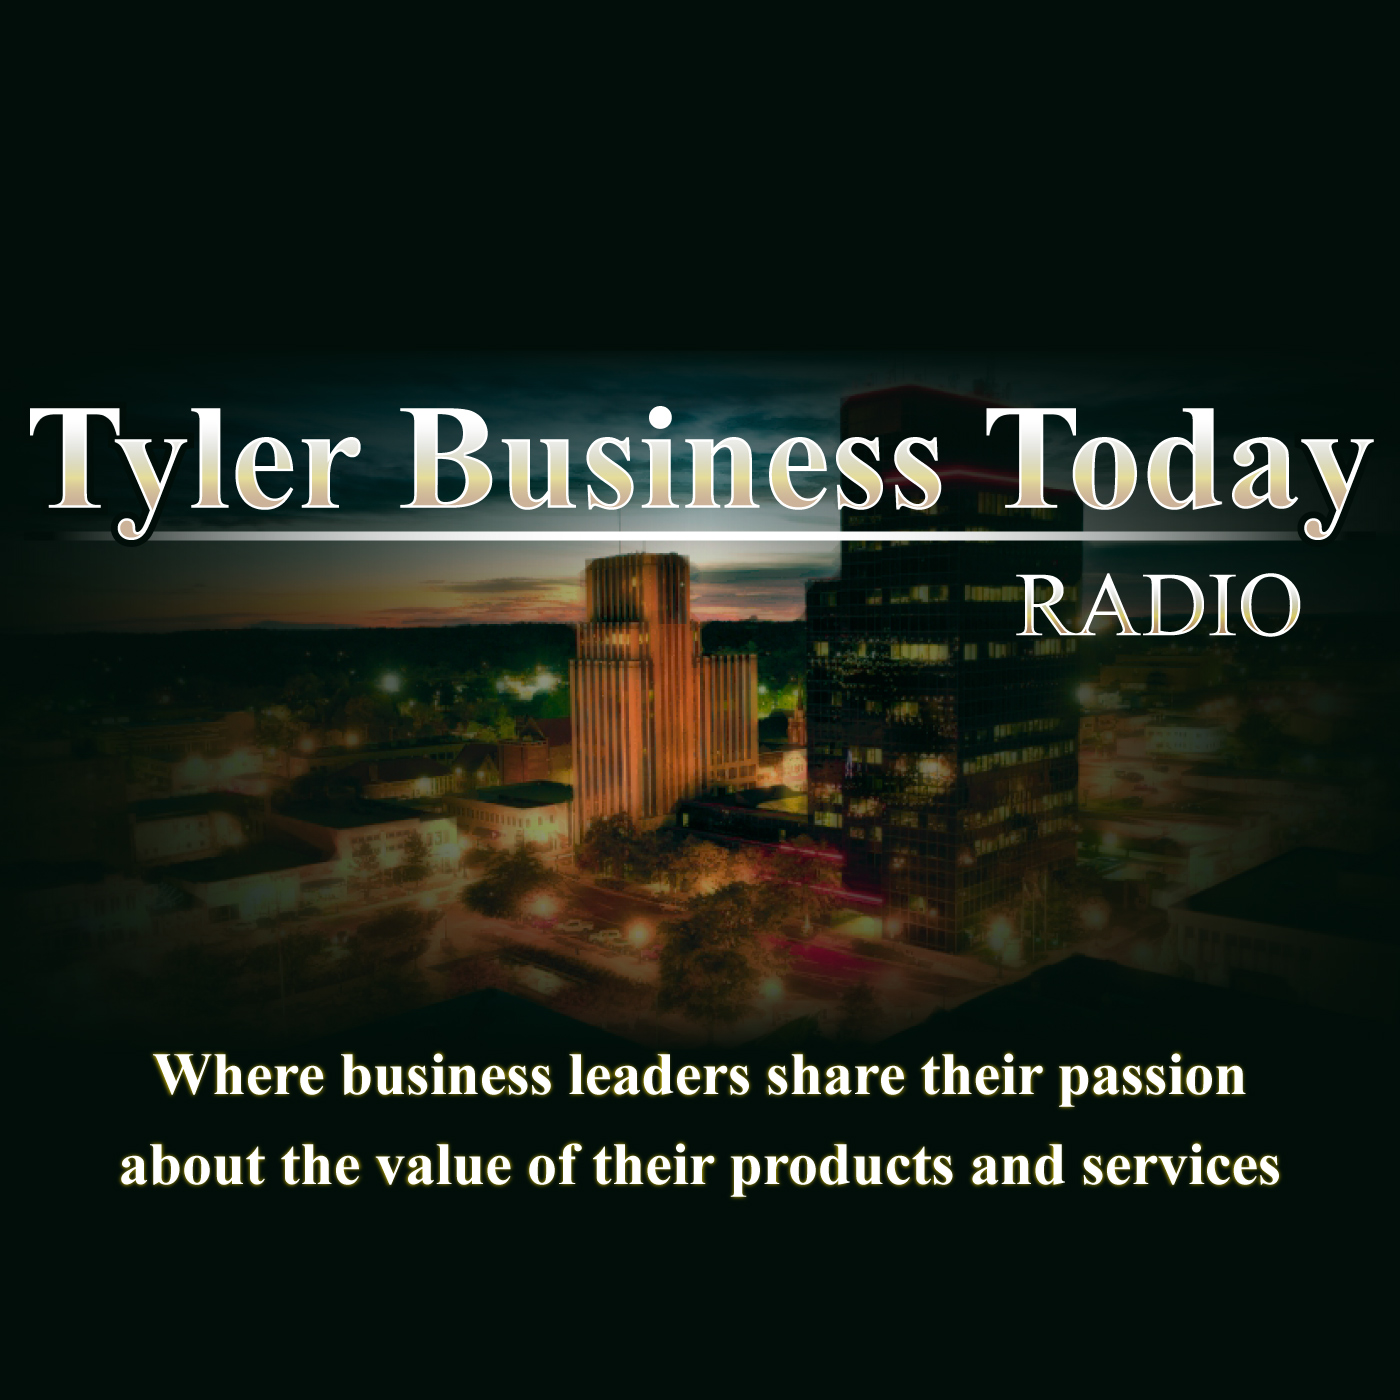 Tyler Business Today Radio